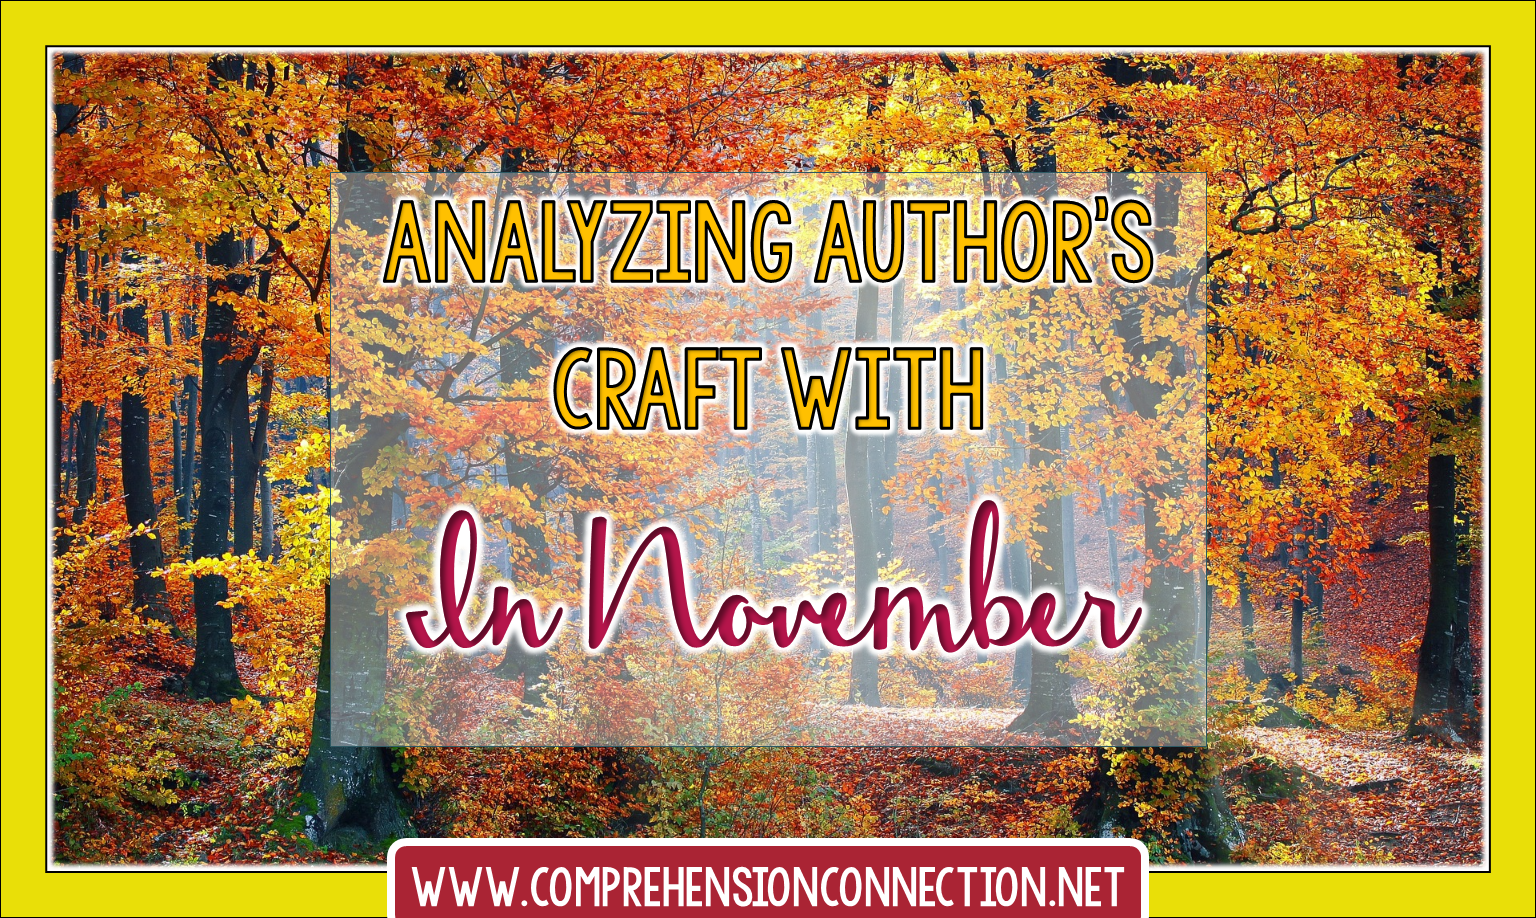 Need teaching ideas to spice up your fall comprehension lessons? This post features the book In November and how it's used for author's craft and writing.